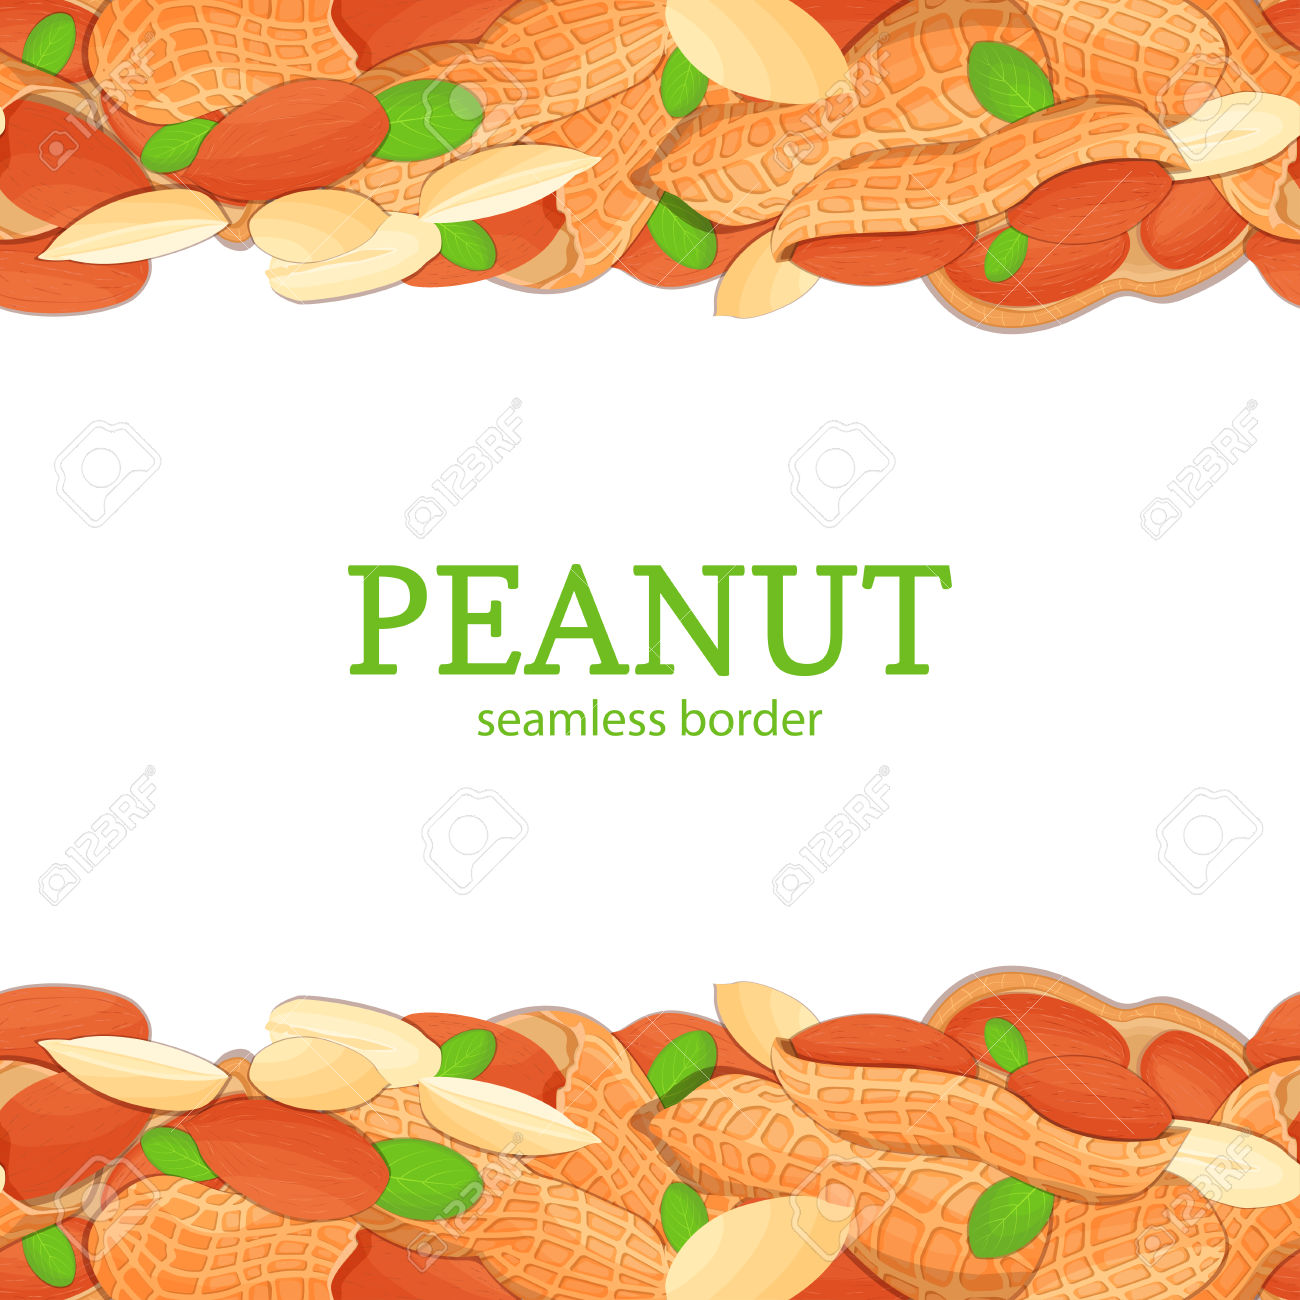 Nut clipart peanut shell Sea Clipart nut  Collection